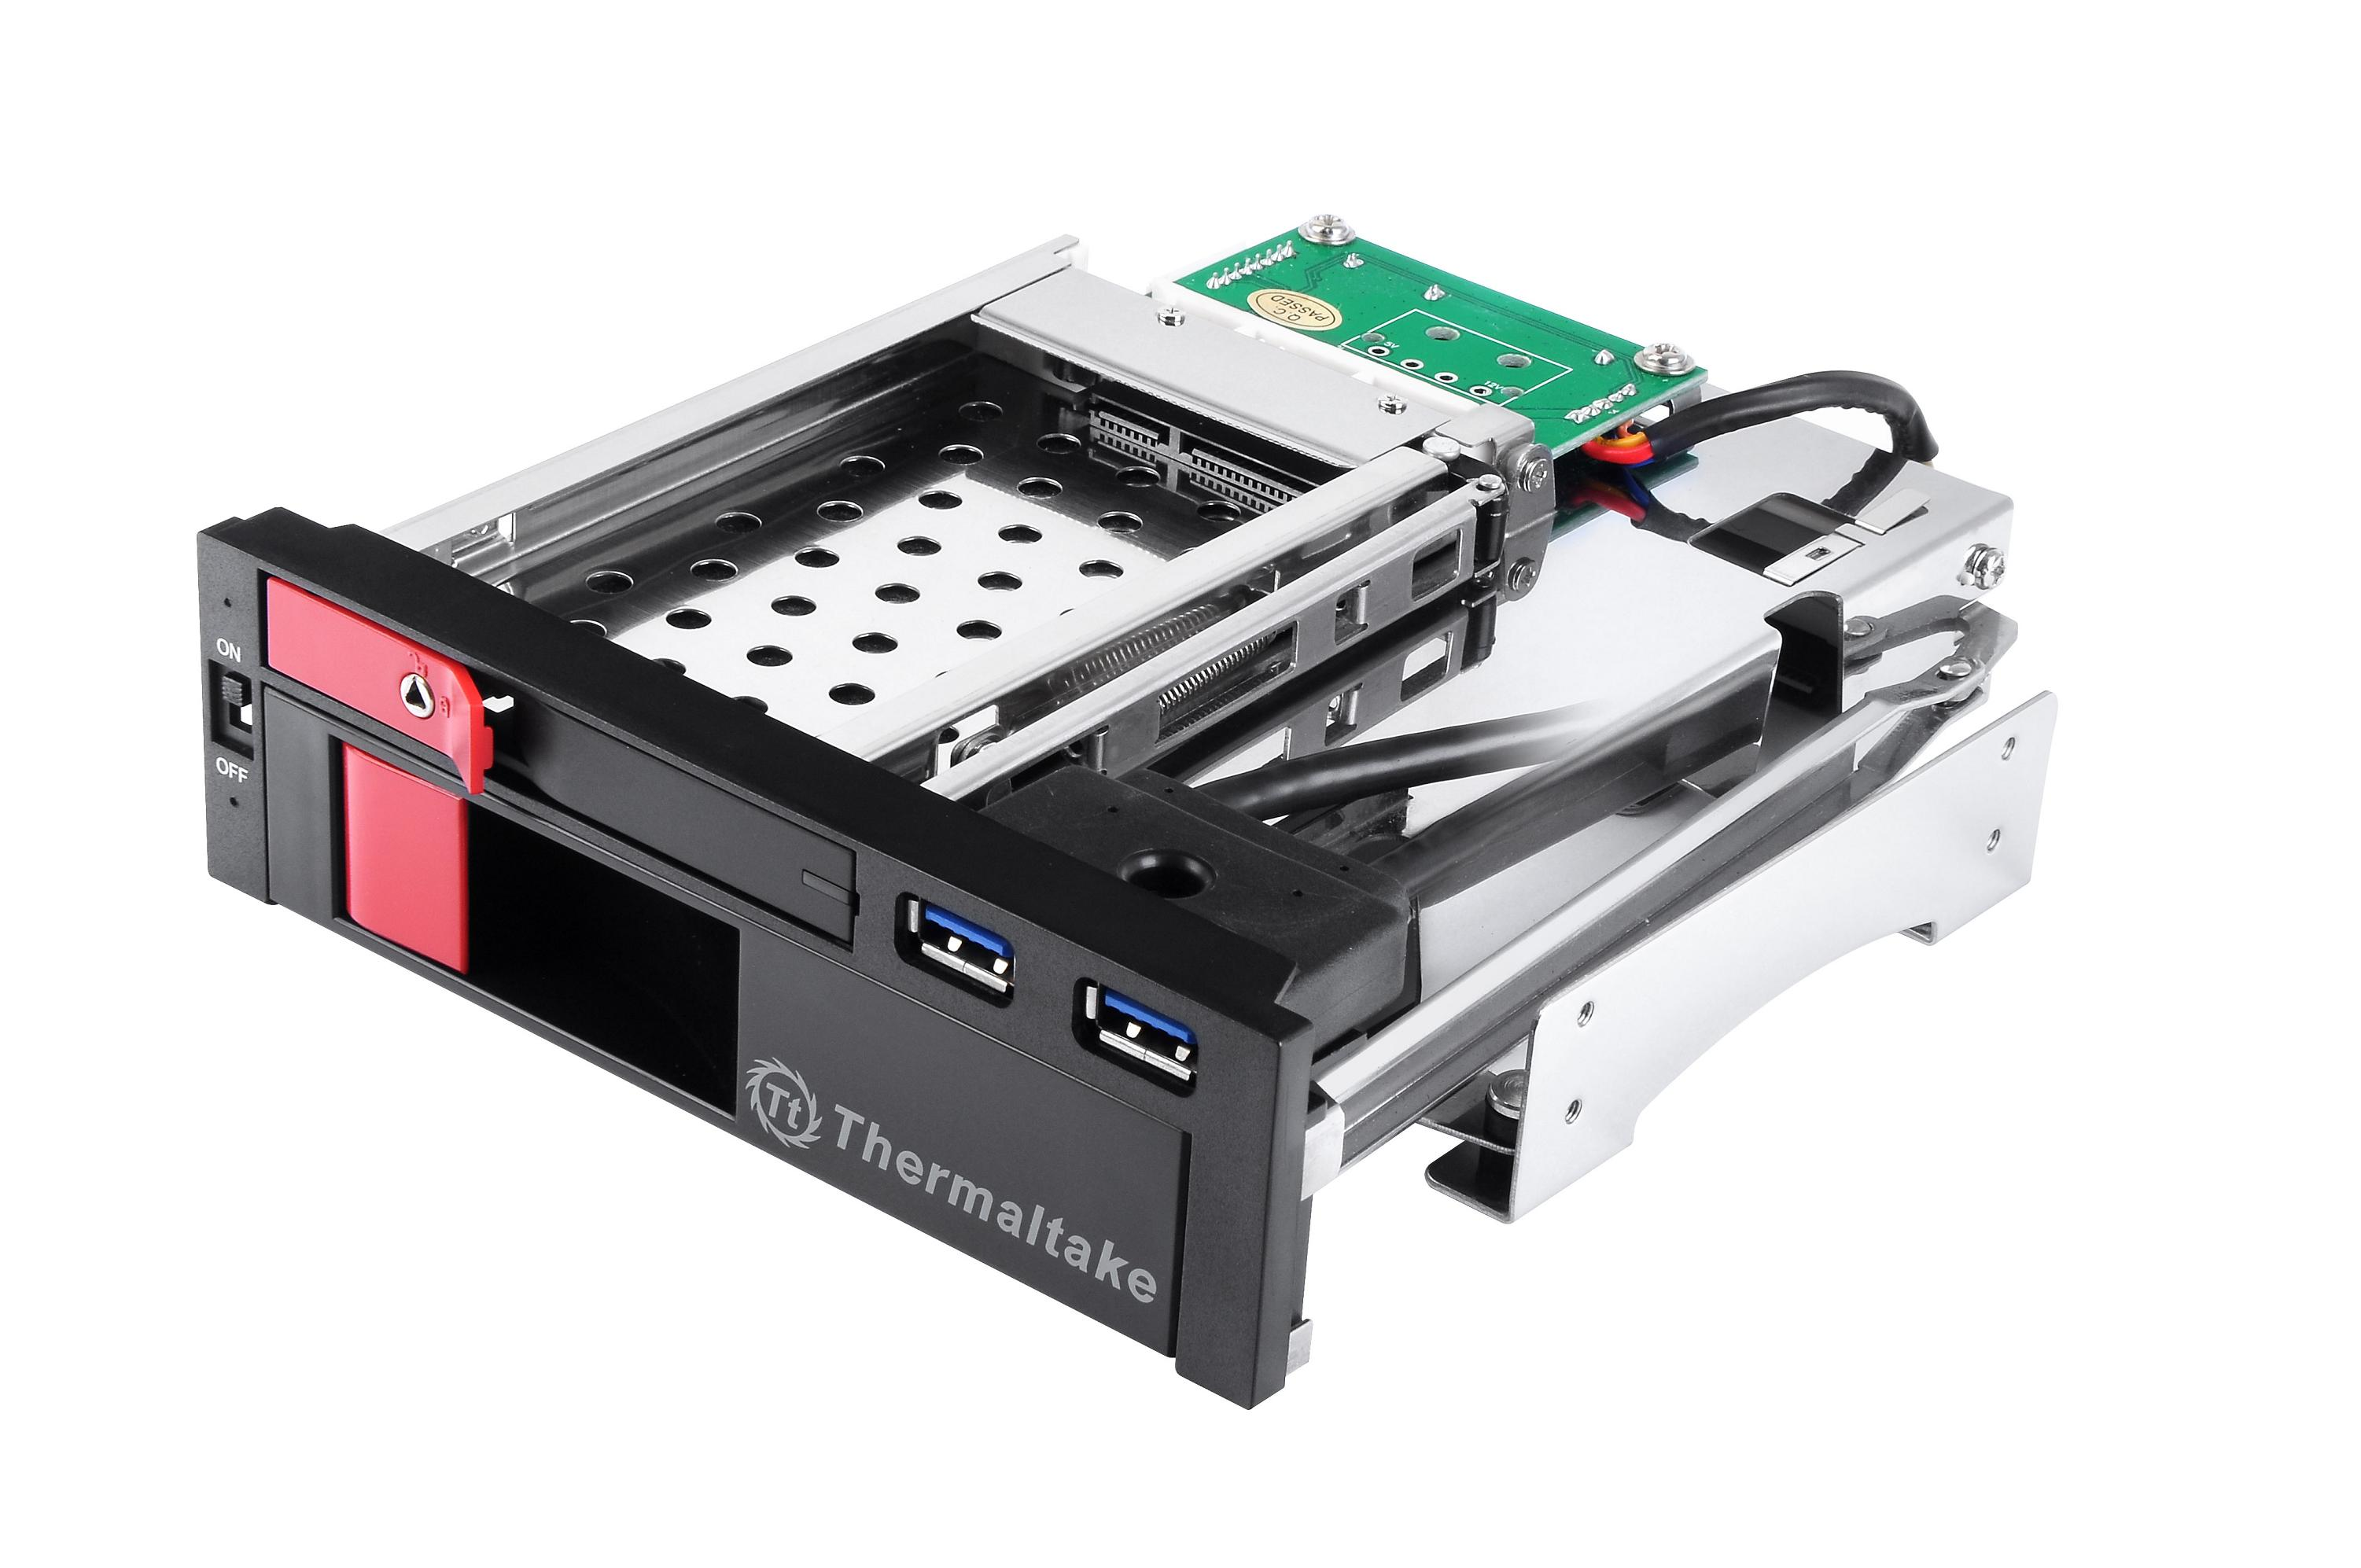 Thermaltake-Max-5-Duo-SATA-HDD-Rack